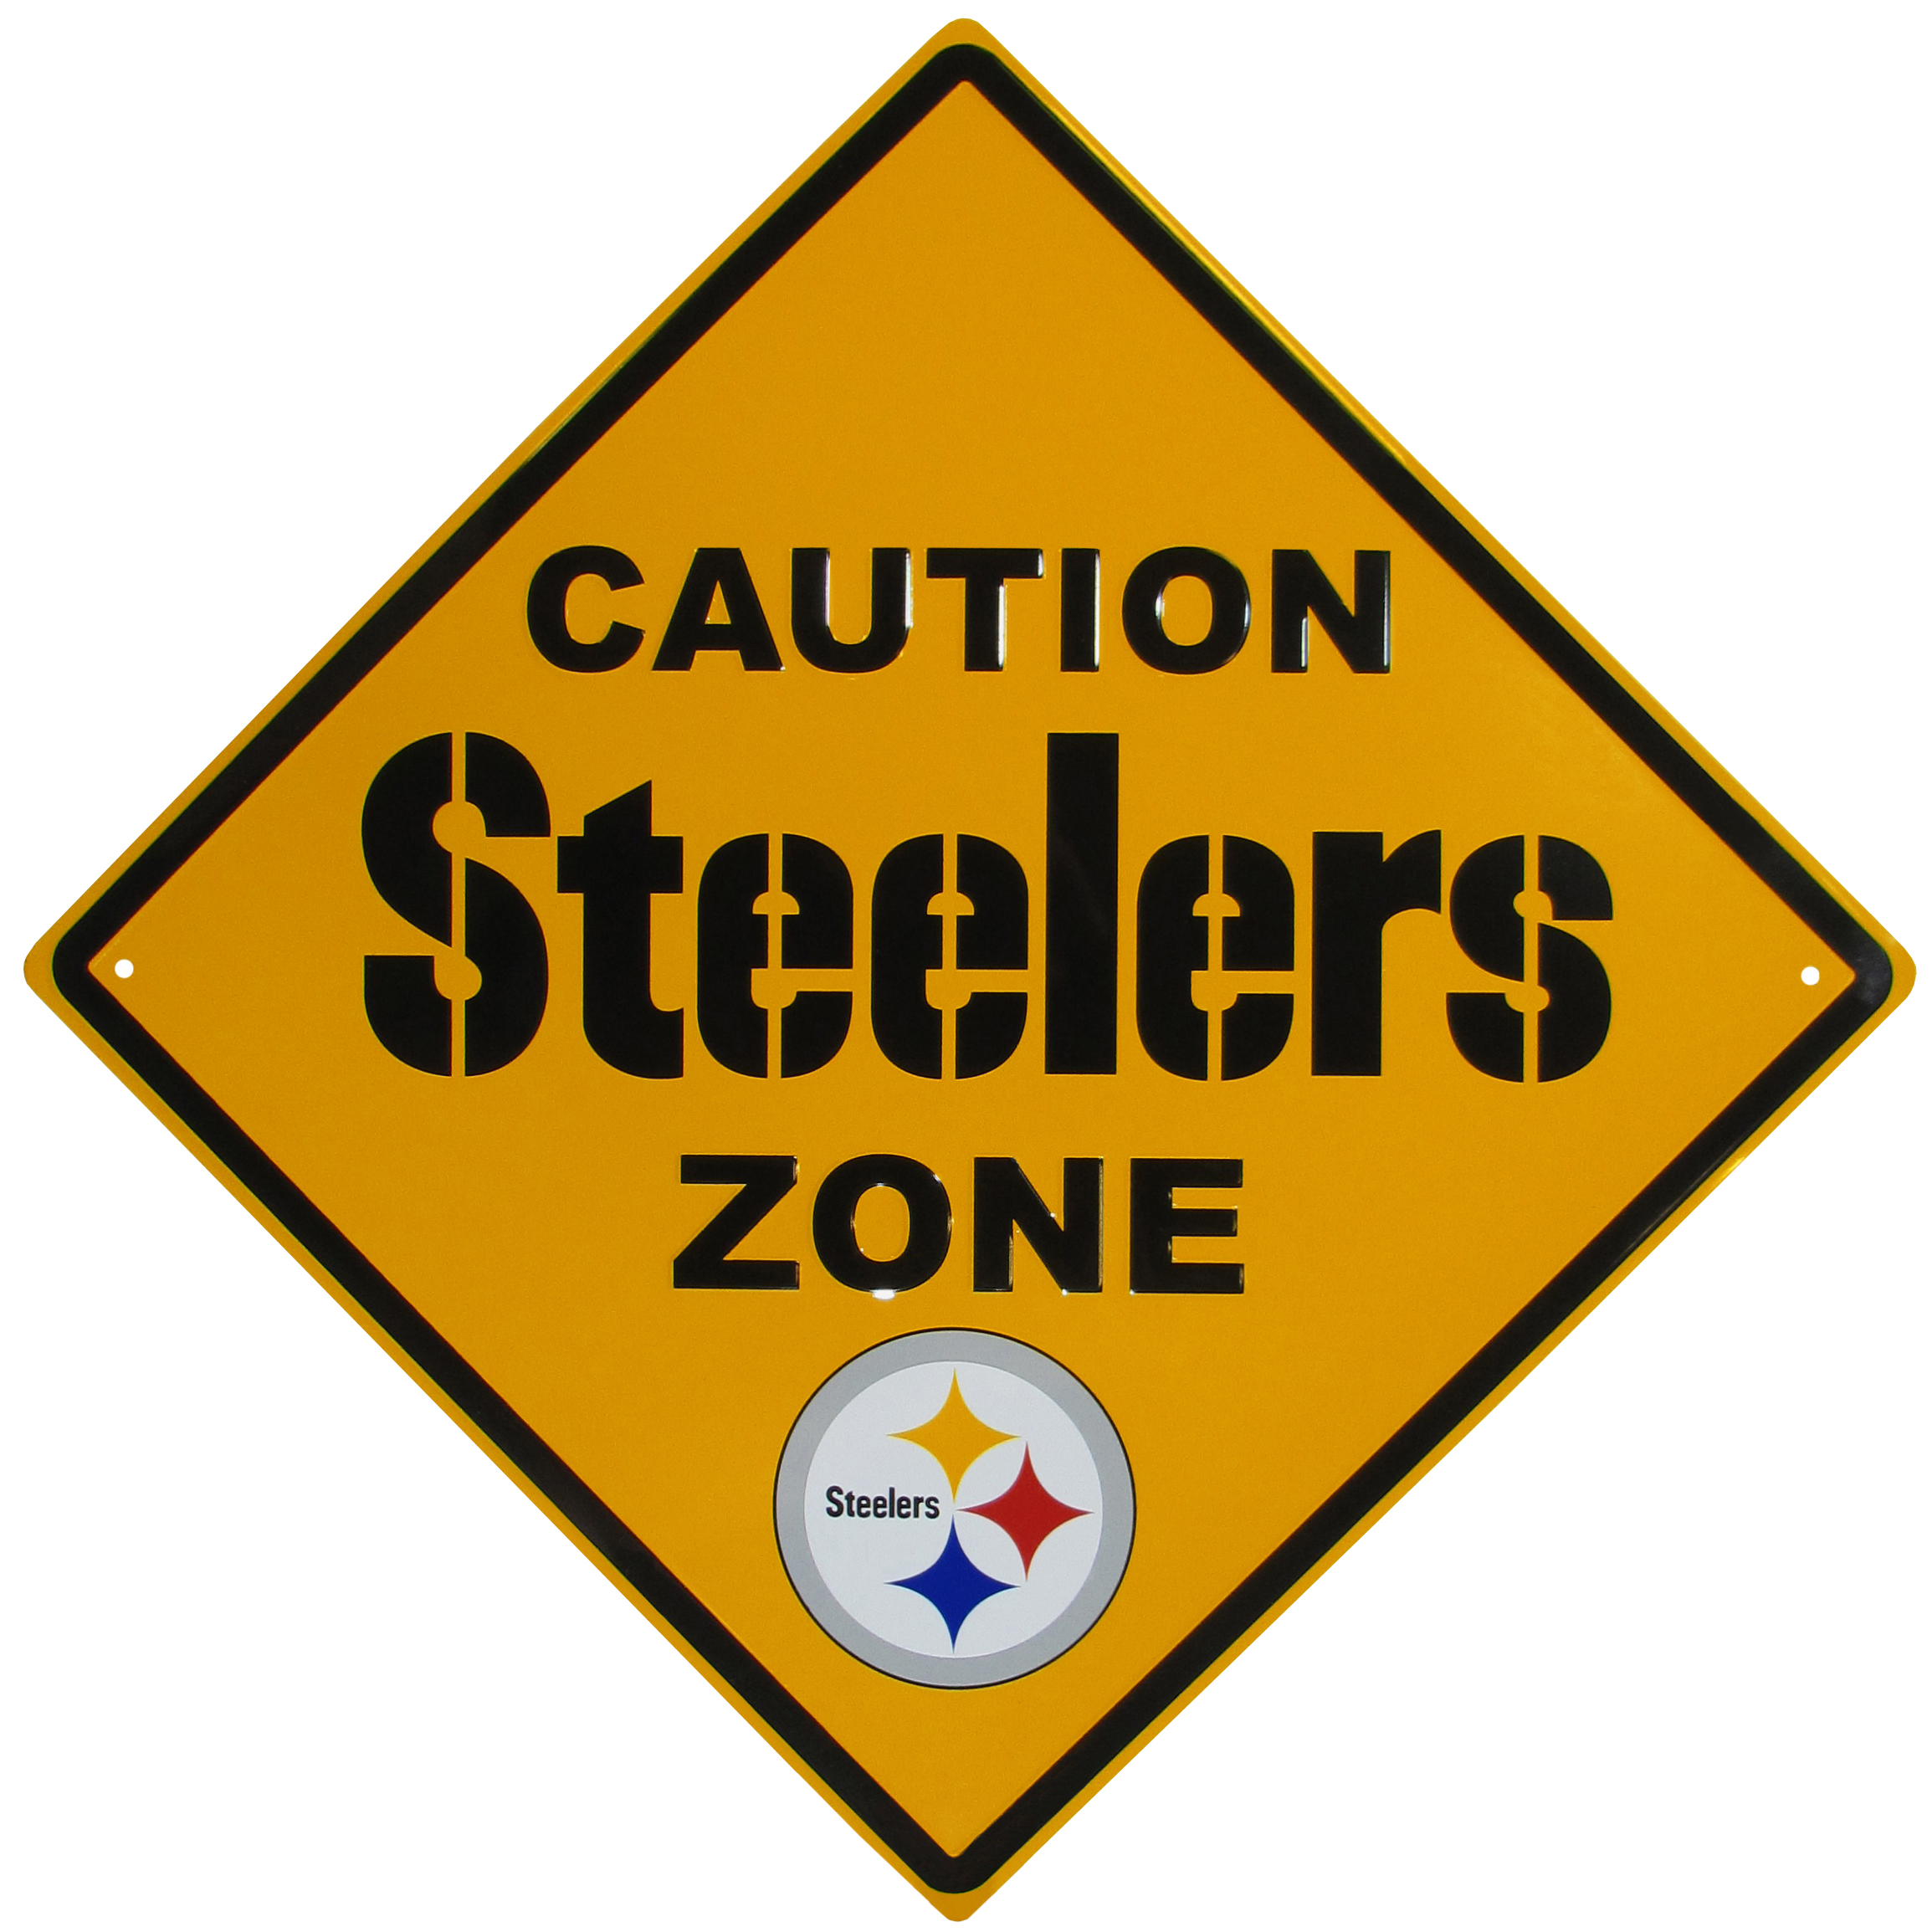 Pittsburgh Steelers Caution Wall Sign Plaque - Let everyone know that they are entering Pittsburgh Steelers territory! Our 14 inch caution wall plaques are a the perfect way to convert any room into a fan cave! The light-weight aluminum signs mount easily to any wall and are perfect for the home or office.